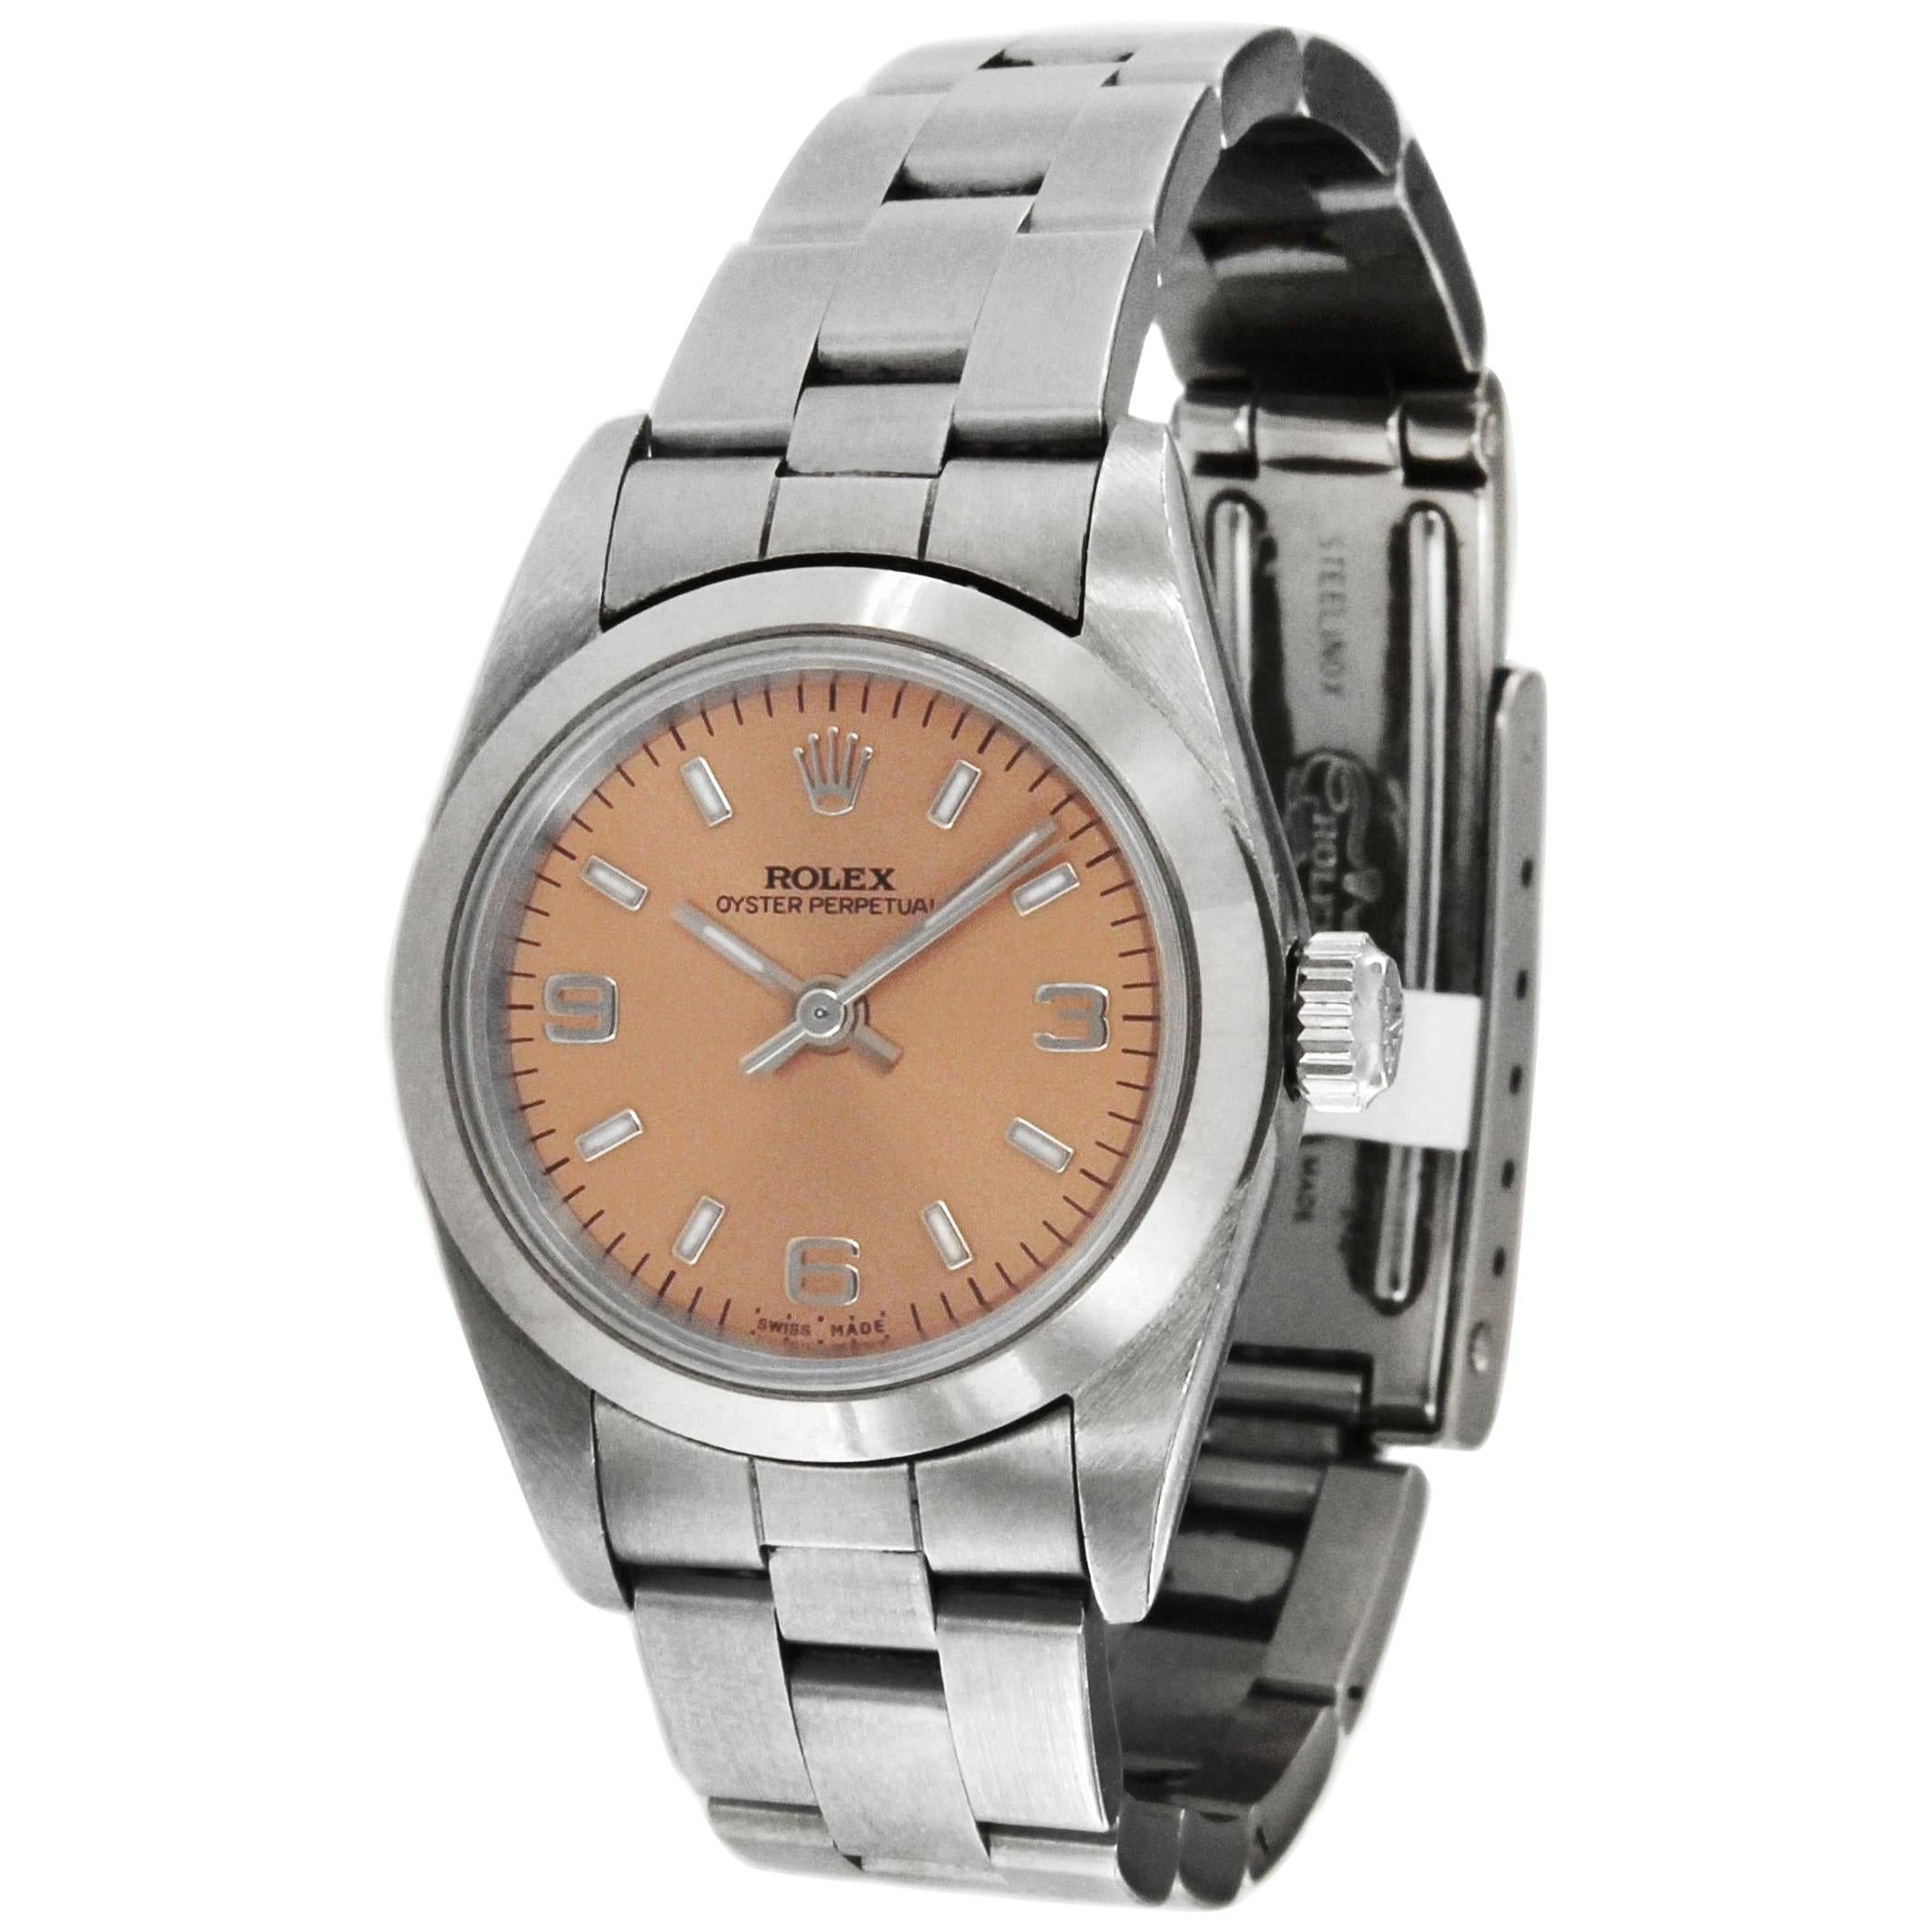 Rolex Oyster Perpetual Lady Pink Dial Ref. 76080